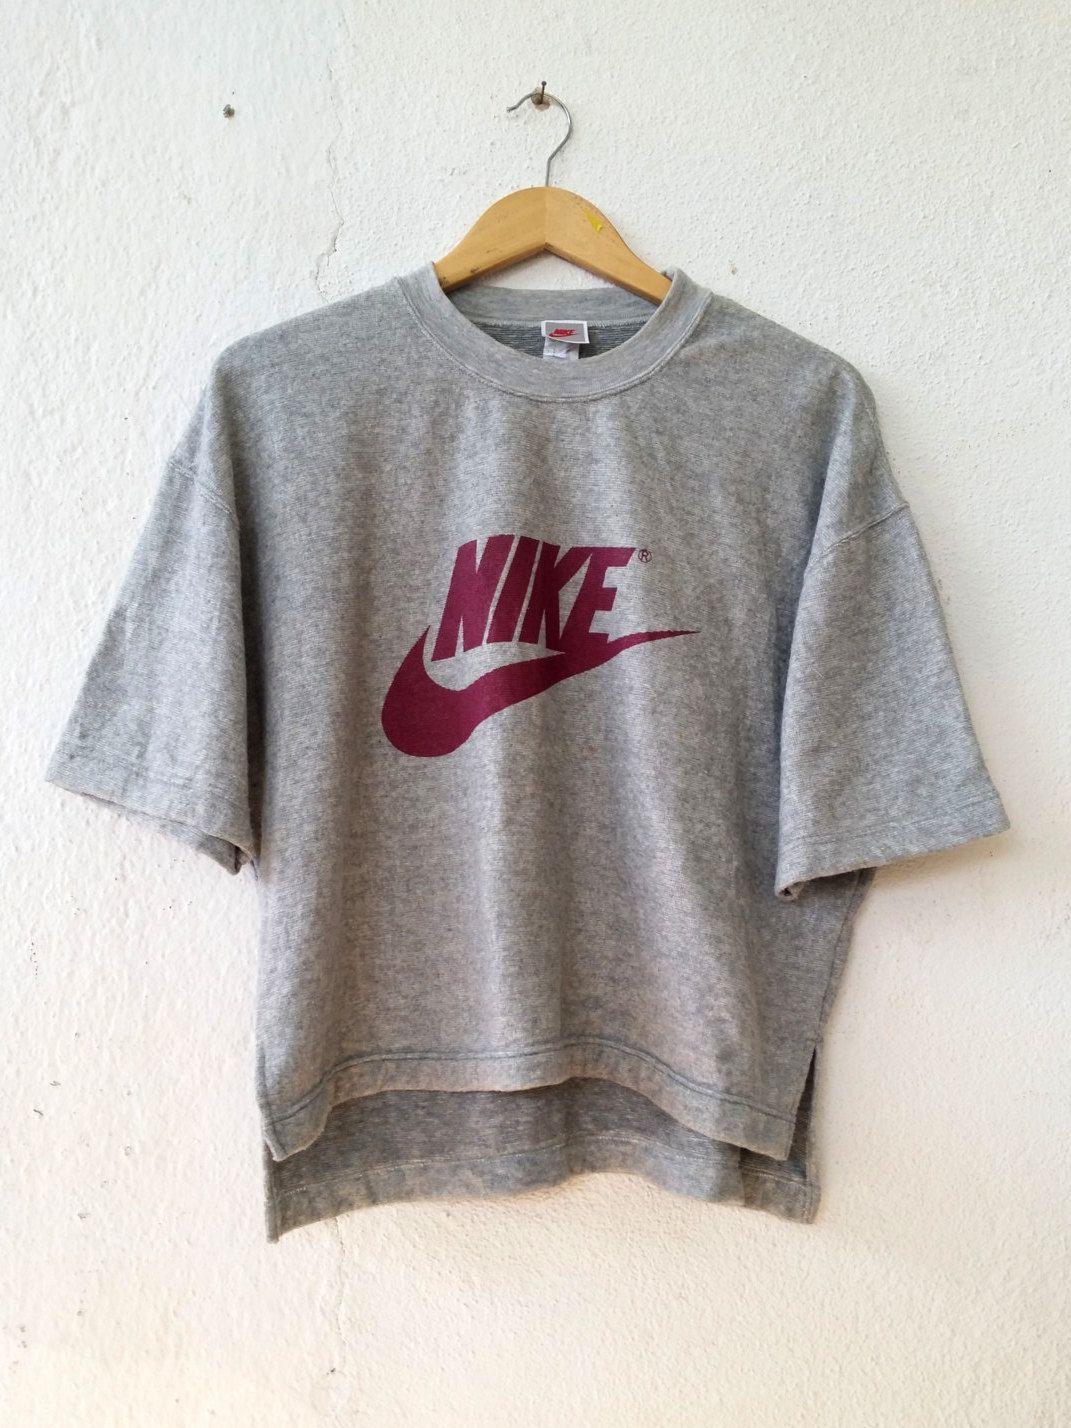 new style 17a81 38222 Vintage 90 s NIKE Sweatshirt with Big Logo Spell Out Printed Sweater Jumper  Pullover Swag Hip Hop Streetwear Adult Oversize L VSS111 by fiestorevintage  on ...